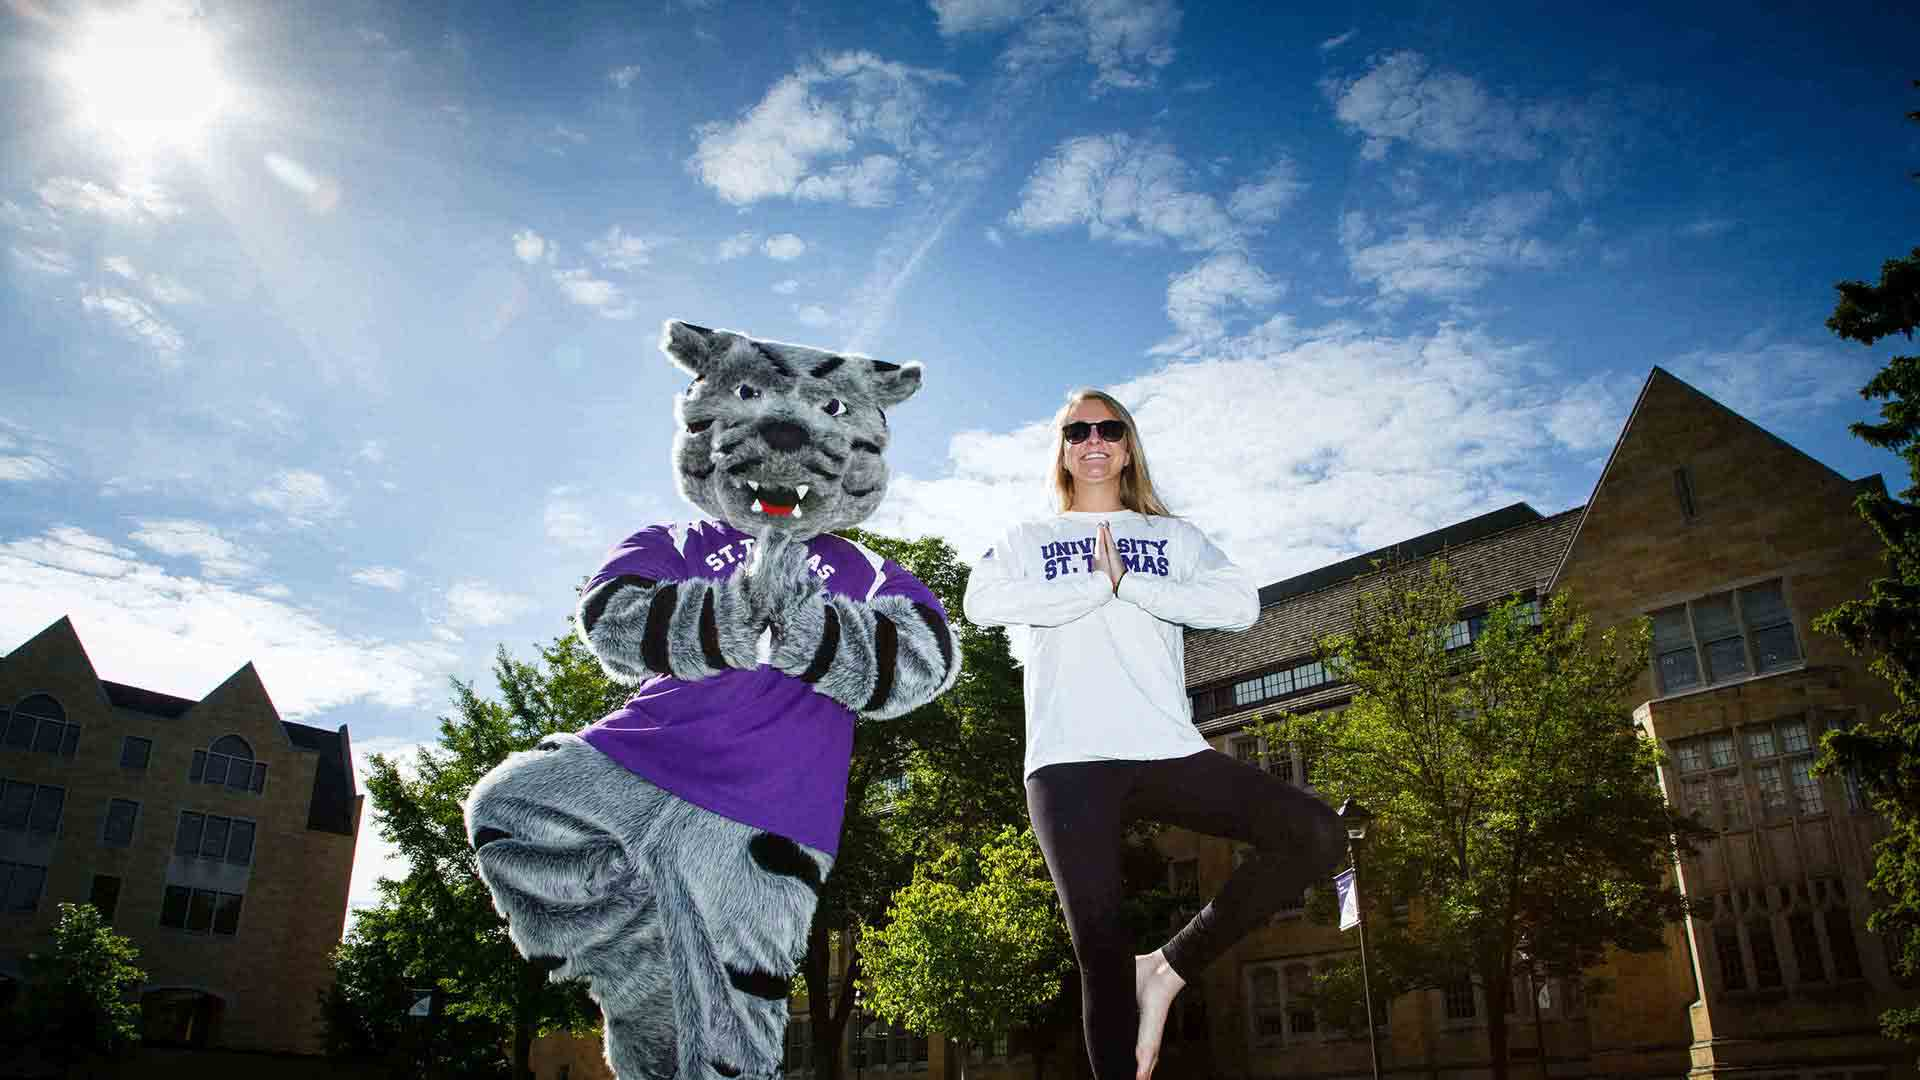 Student and mascot Tommie the Tomcat perform yoga poses.